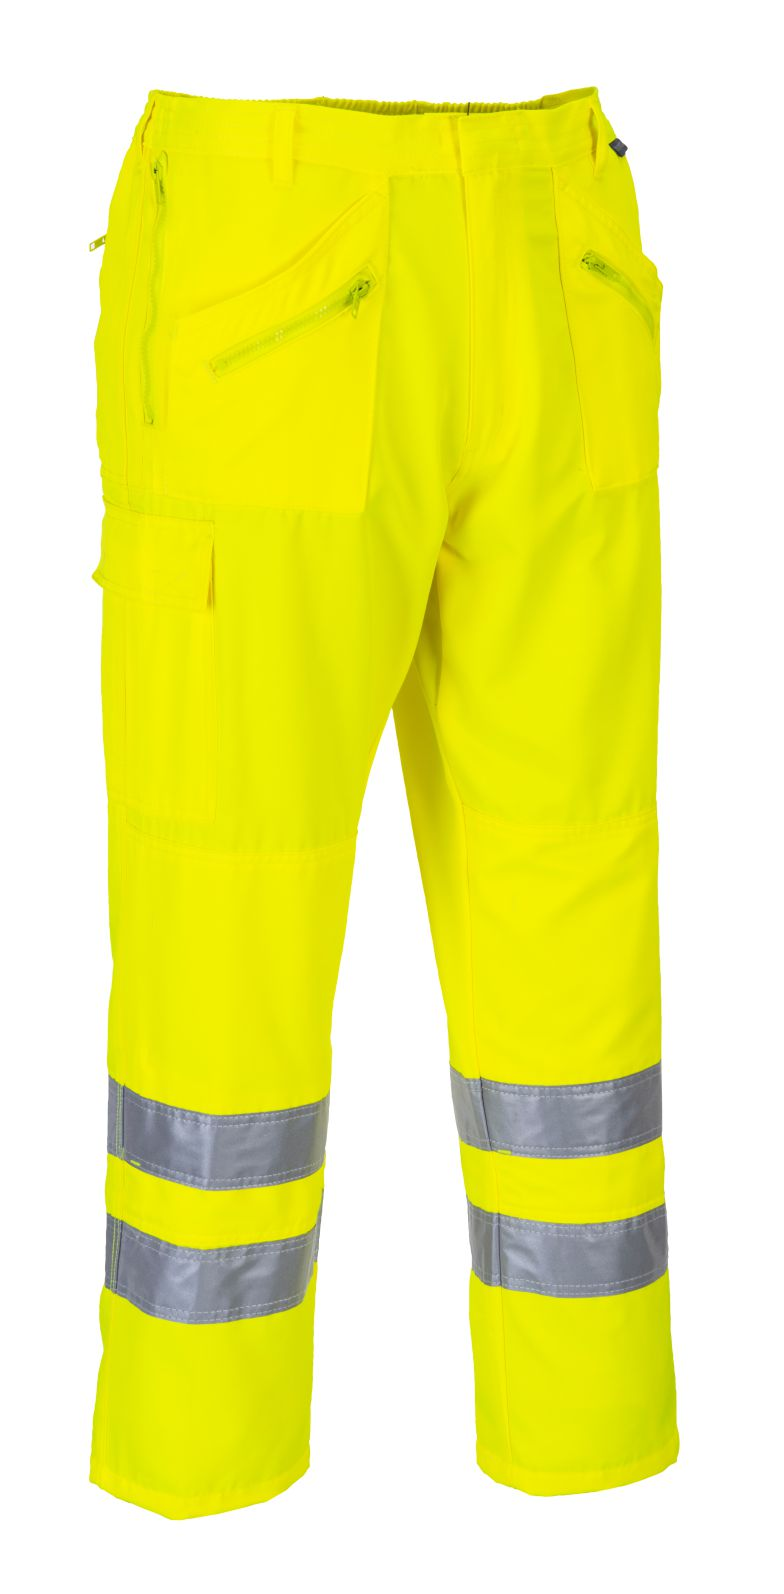 EO61 Hi Vis Action Trousers